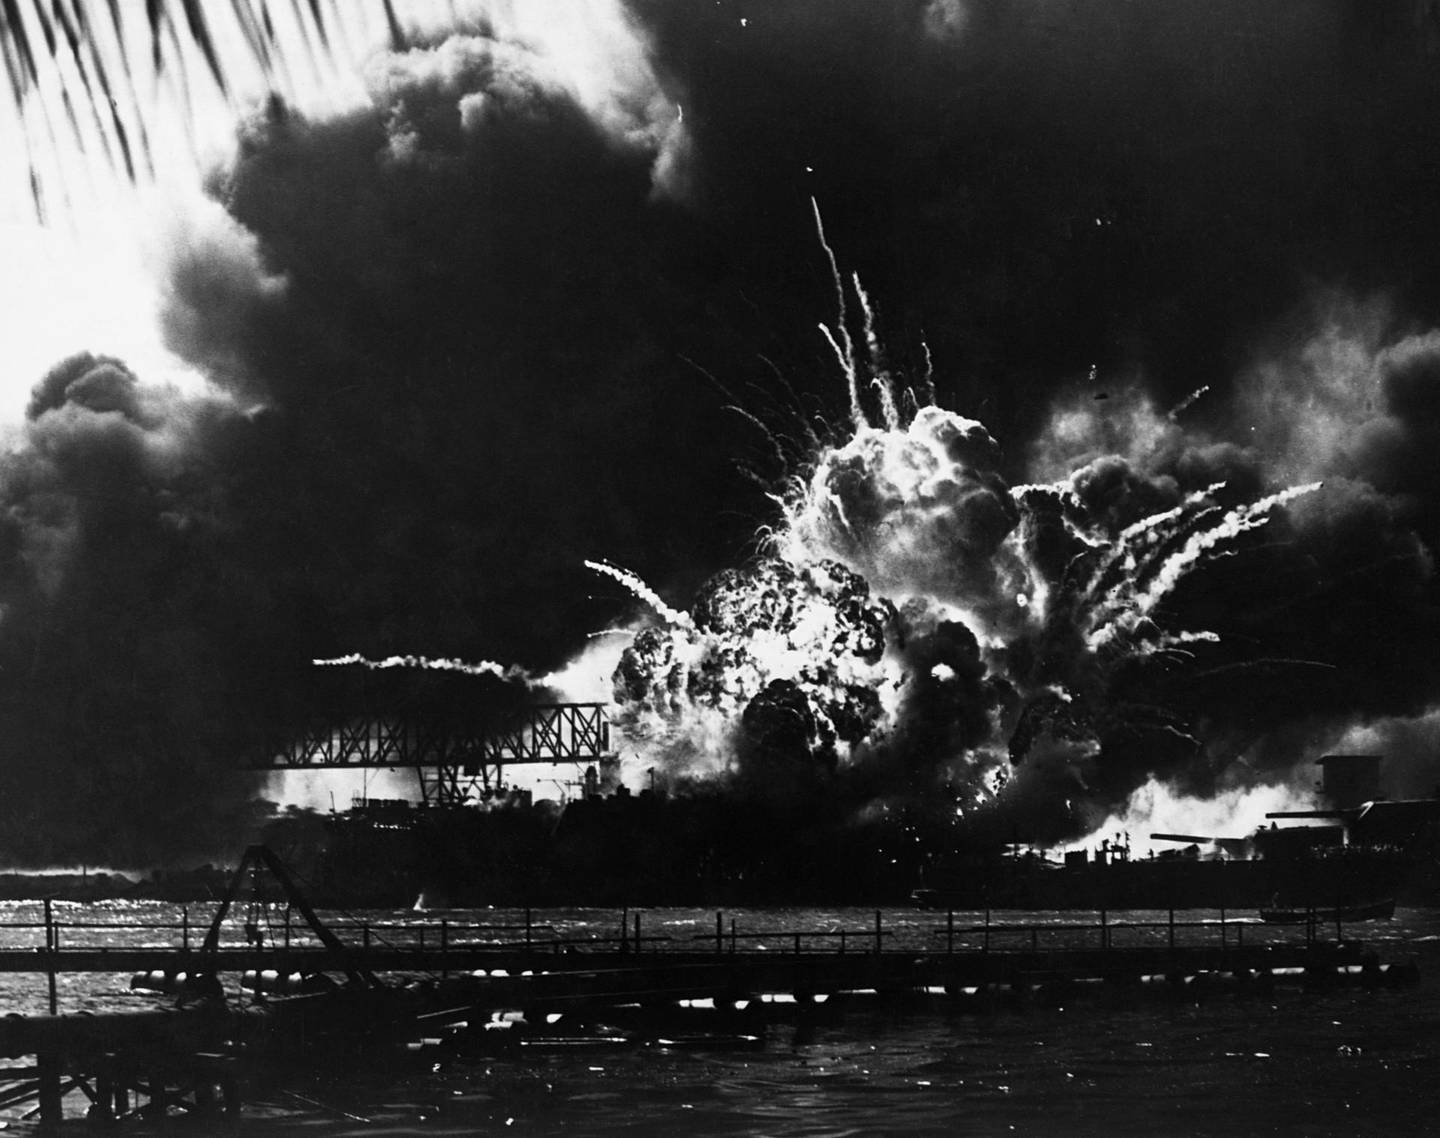 07 Dec 1941, Honolulu, Oahu, Hawaii, USA --- Smoke and flames make a spectacular sight as the USS Shaw explodes during the Japanese attack on Pearl Harbor.  December 7, 1941. --- Image by © CORBIS